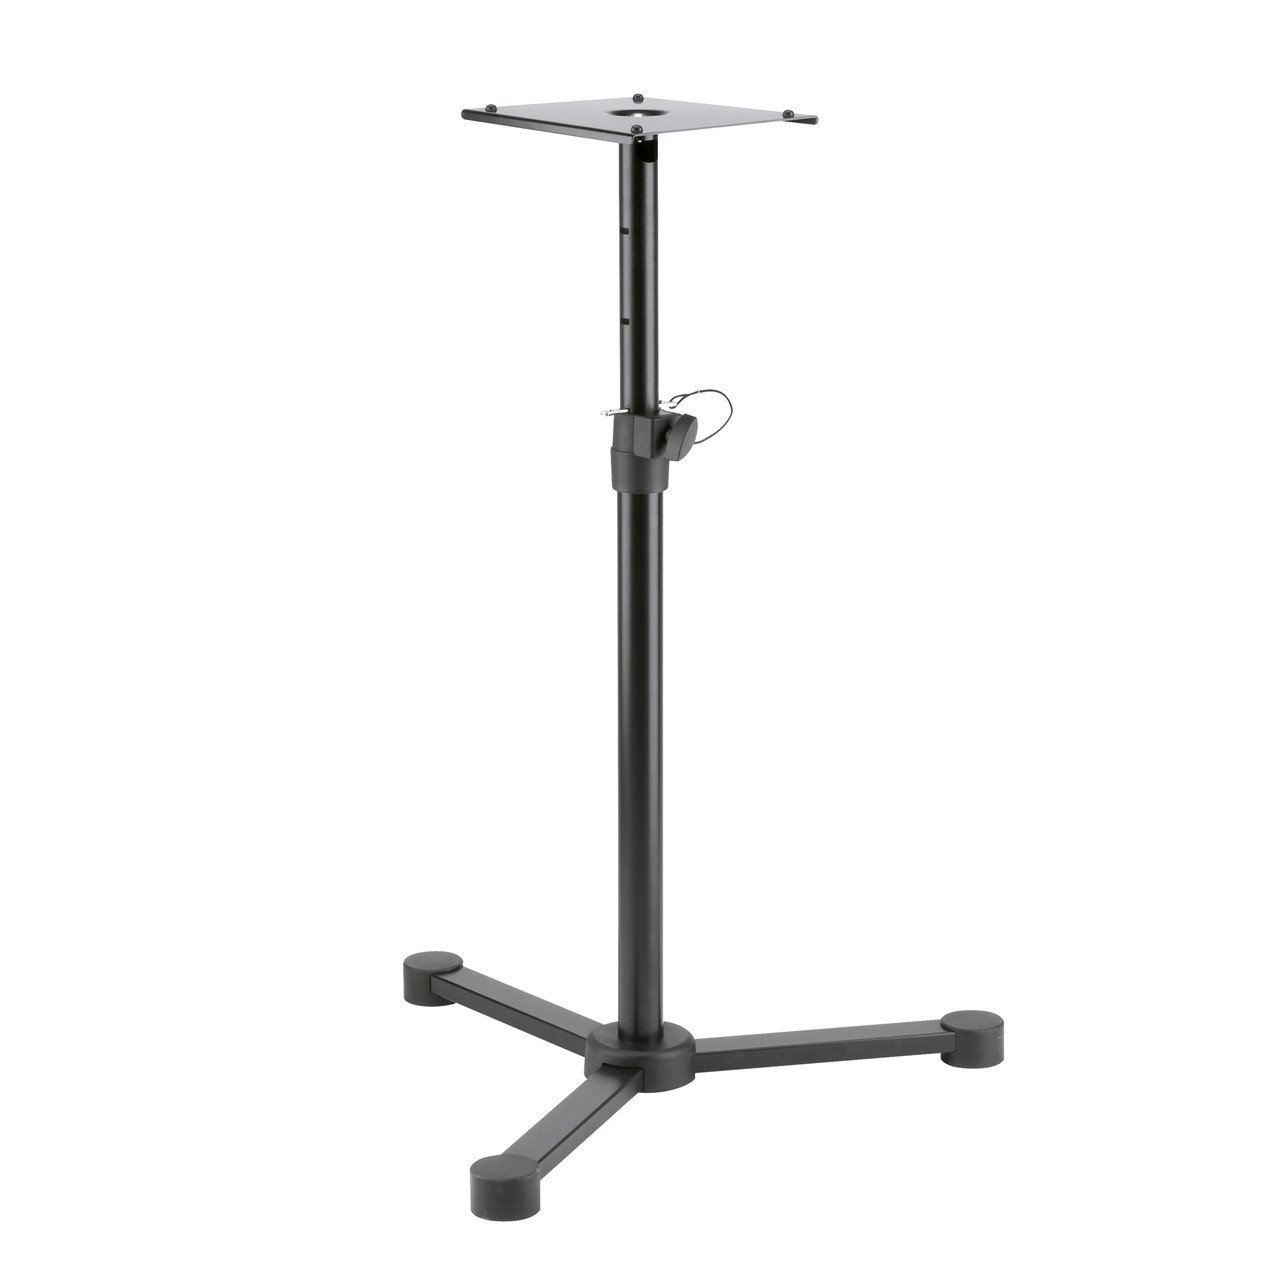 Studio Monitor Stands - Konig & Meyer 26720 Monitor Stand Black (SINGLE)